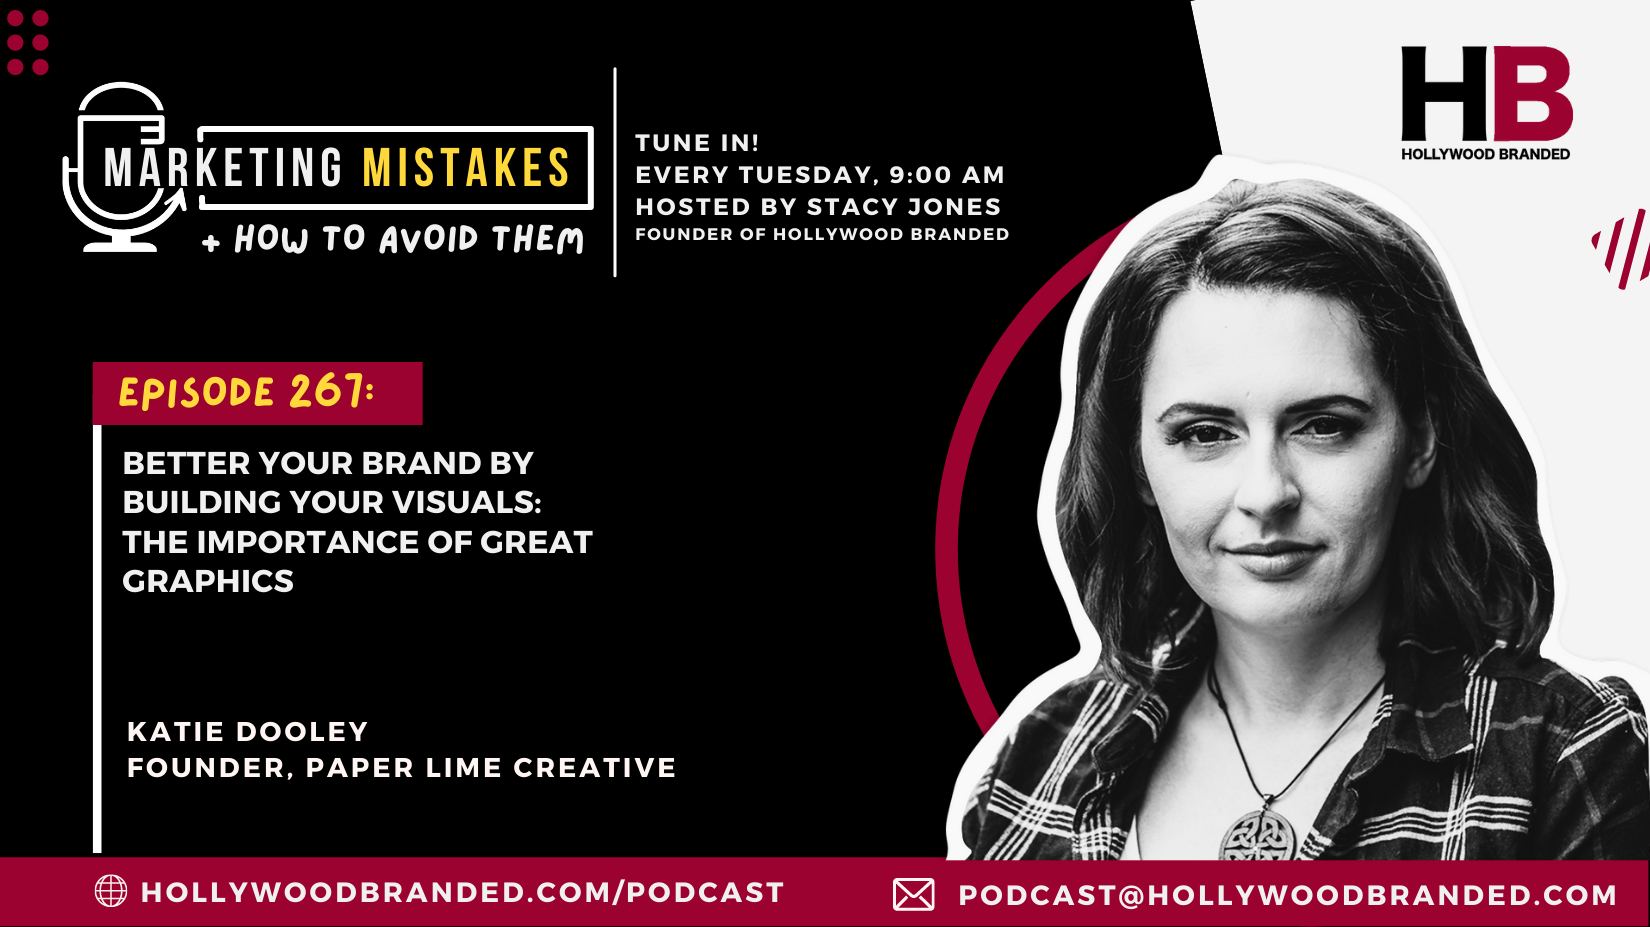 EP 267 Better Your Brand By Building Your Visuals The Importance of Great Graphics With Katie Dooley  Paper Lime Creative (2)